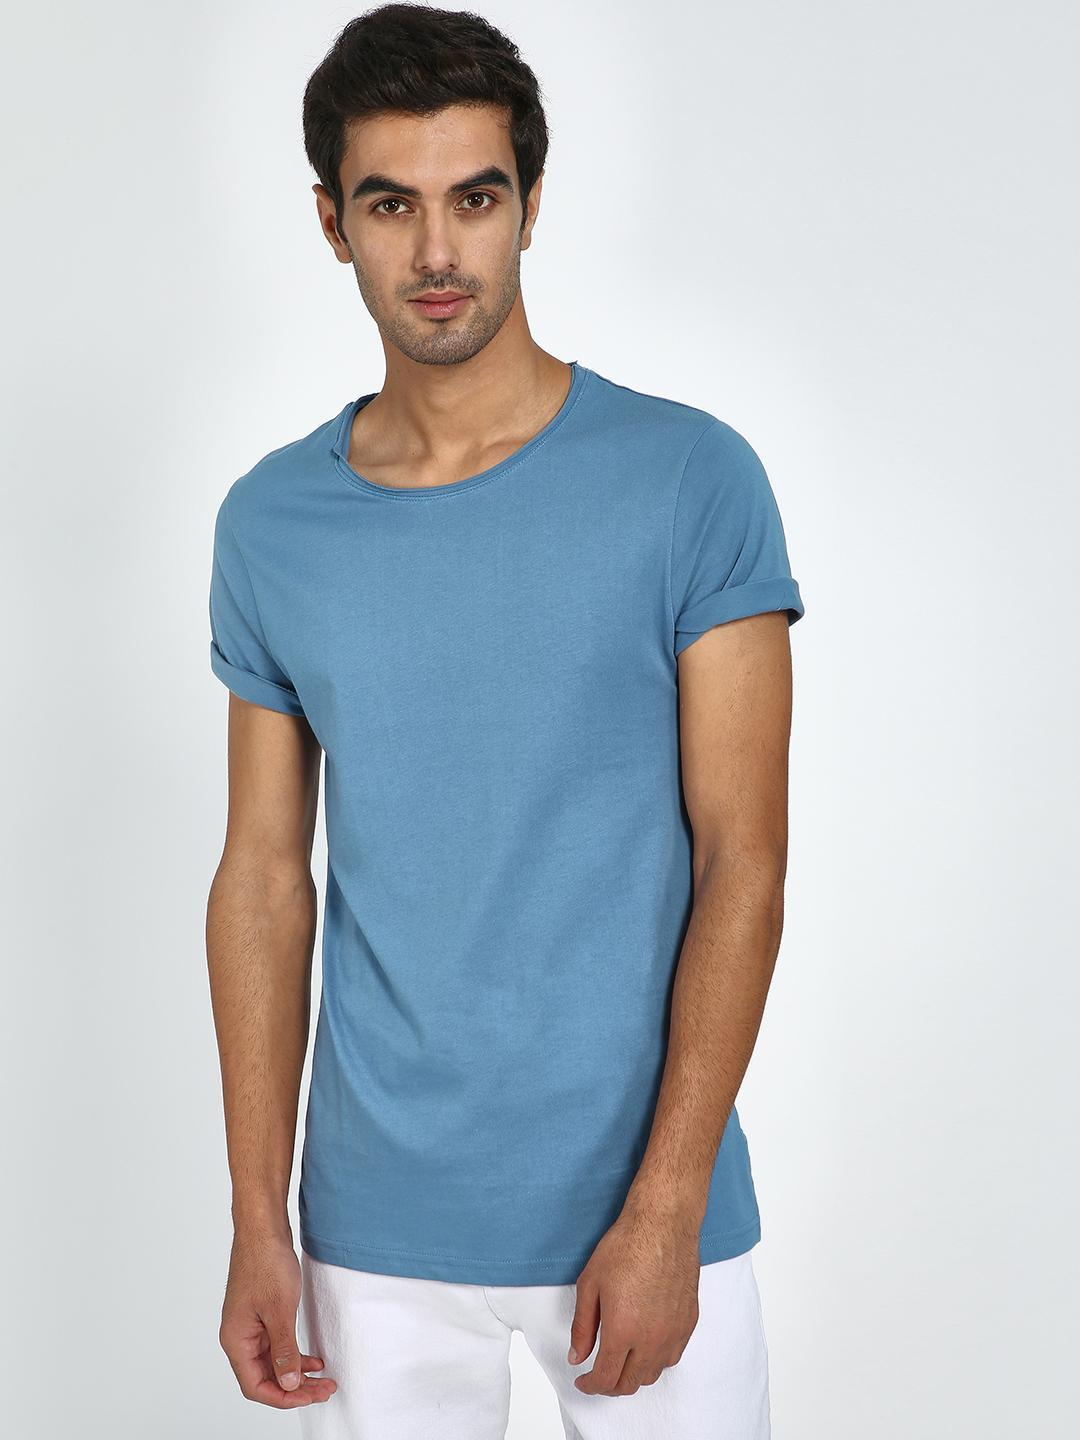 Blue Saint Blue Raw Edge Round Neck T-Shirt 1